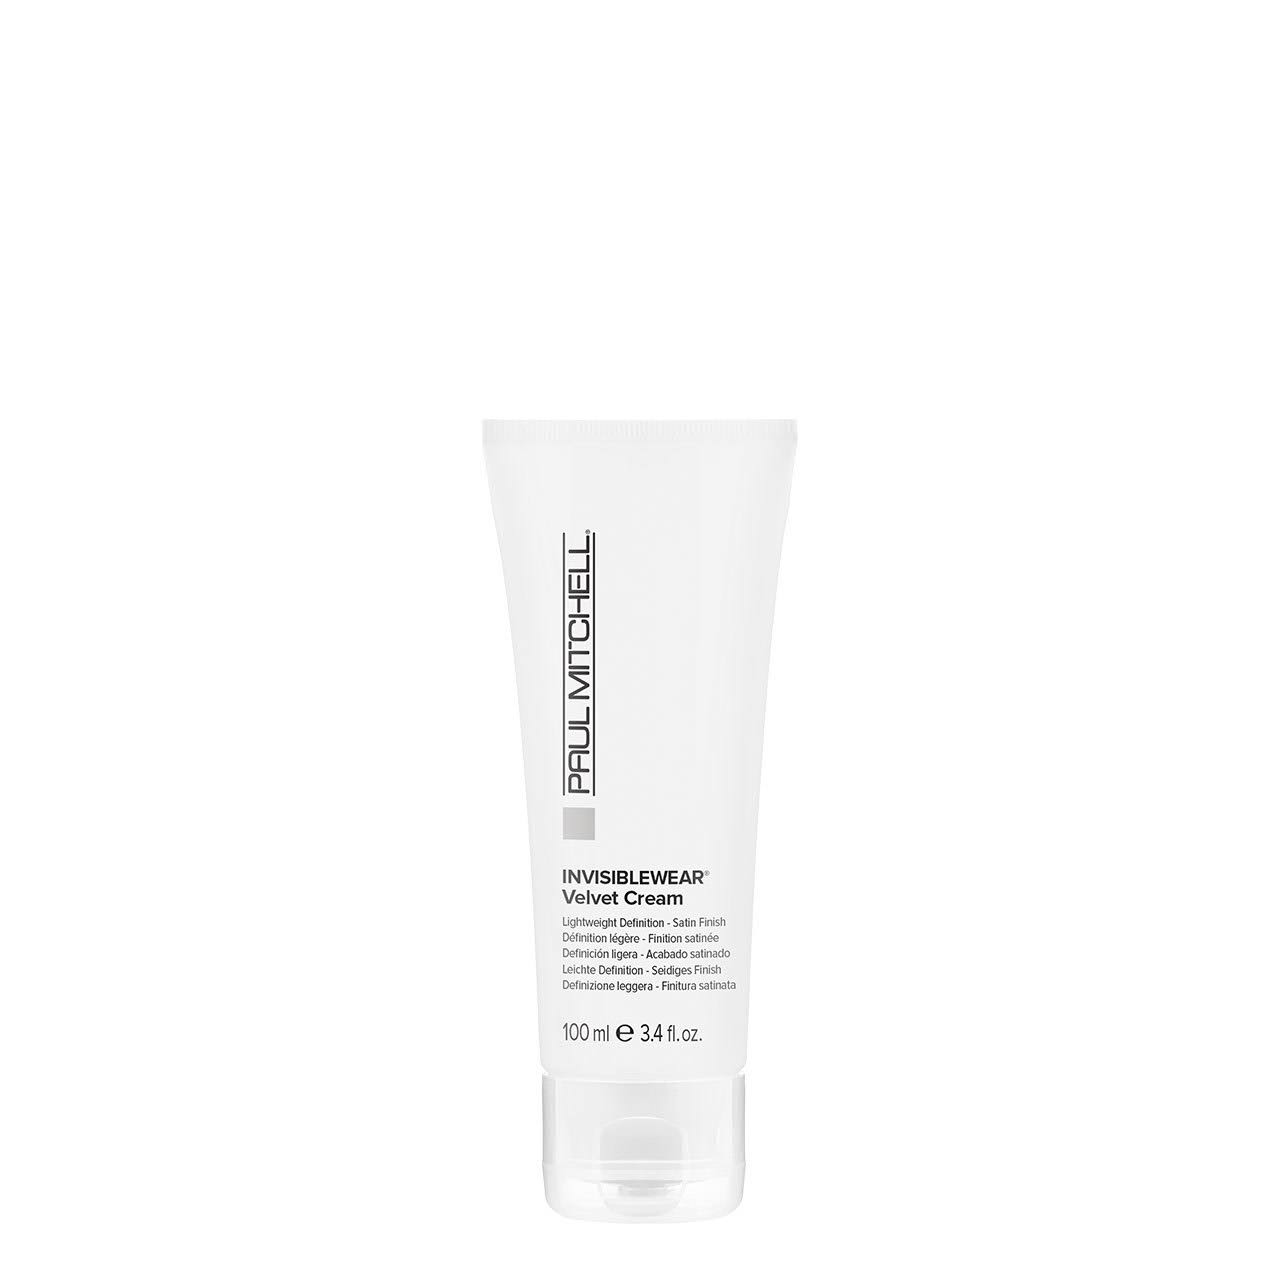 John Paul Mitchell Systems Invisiblewear Velvet Cream - 3.4oz